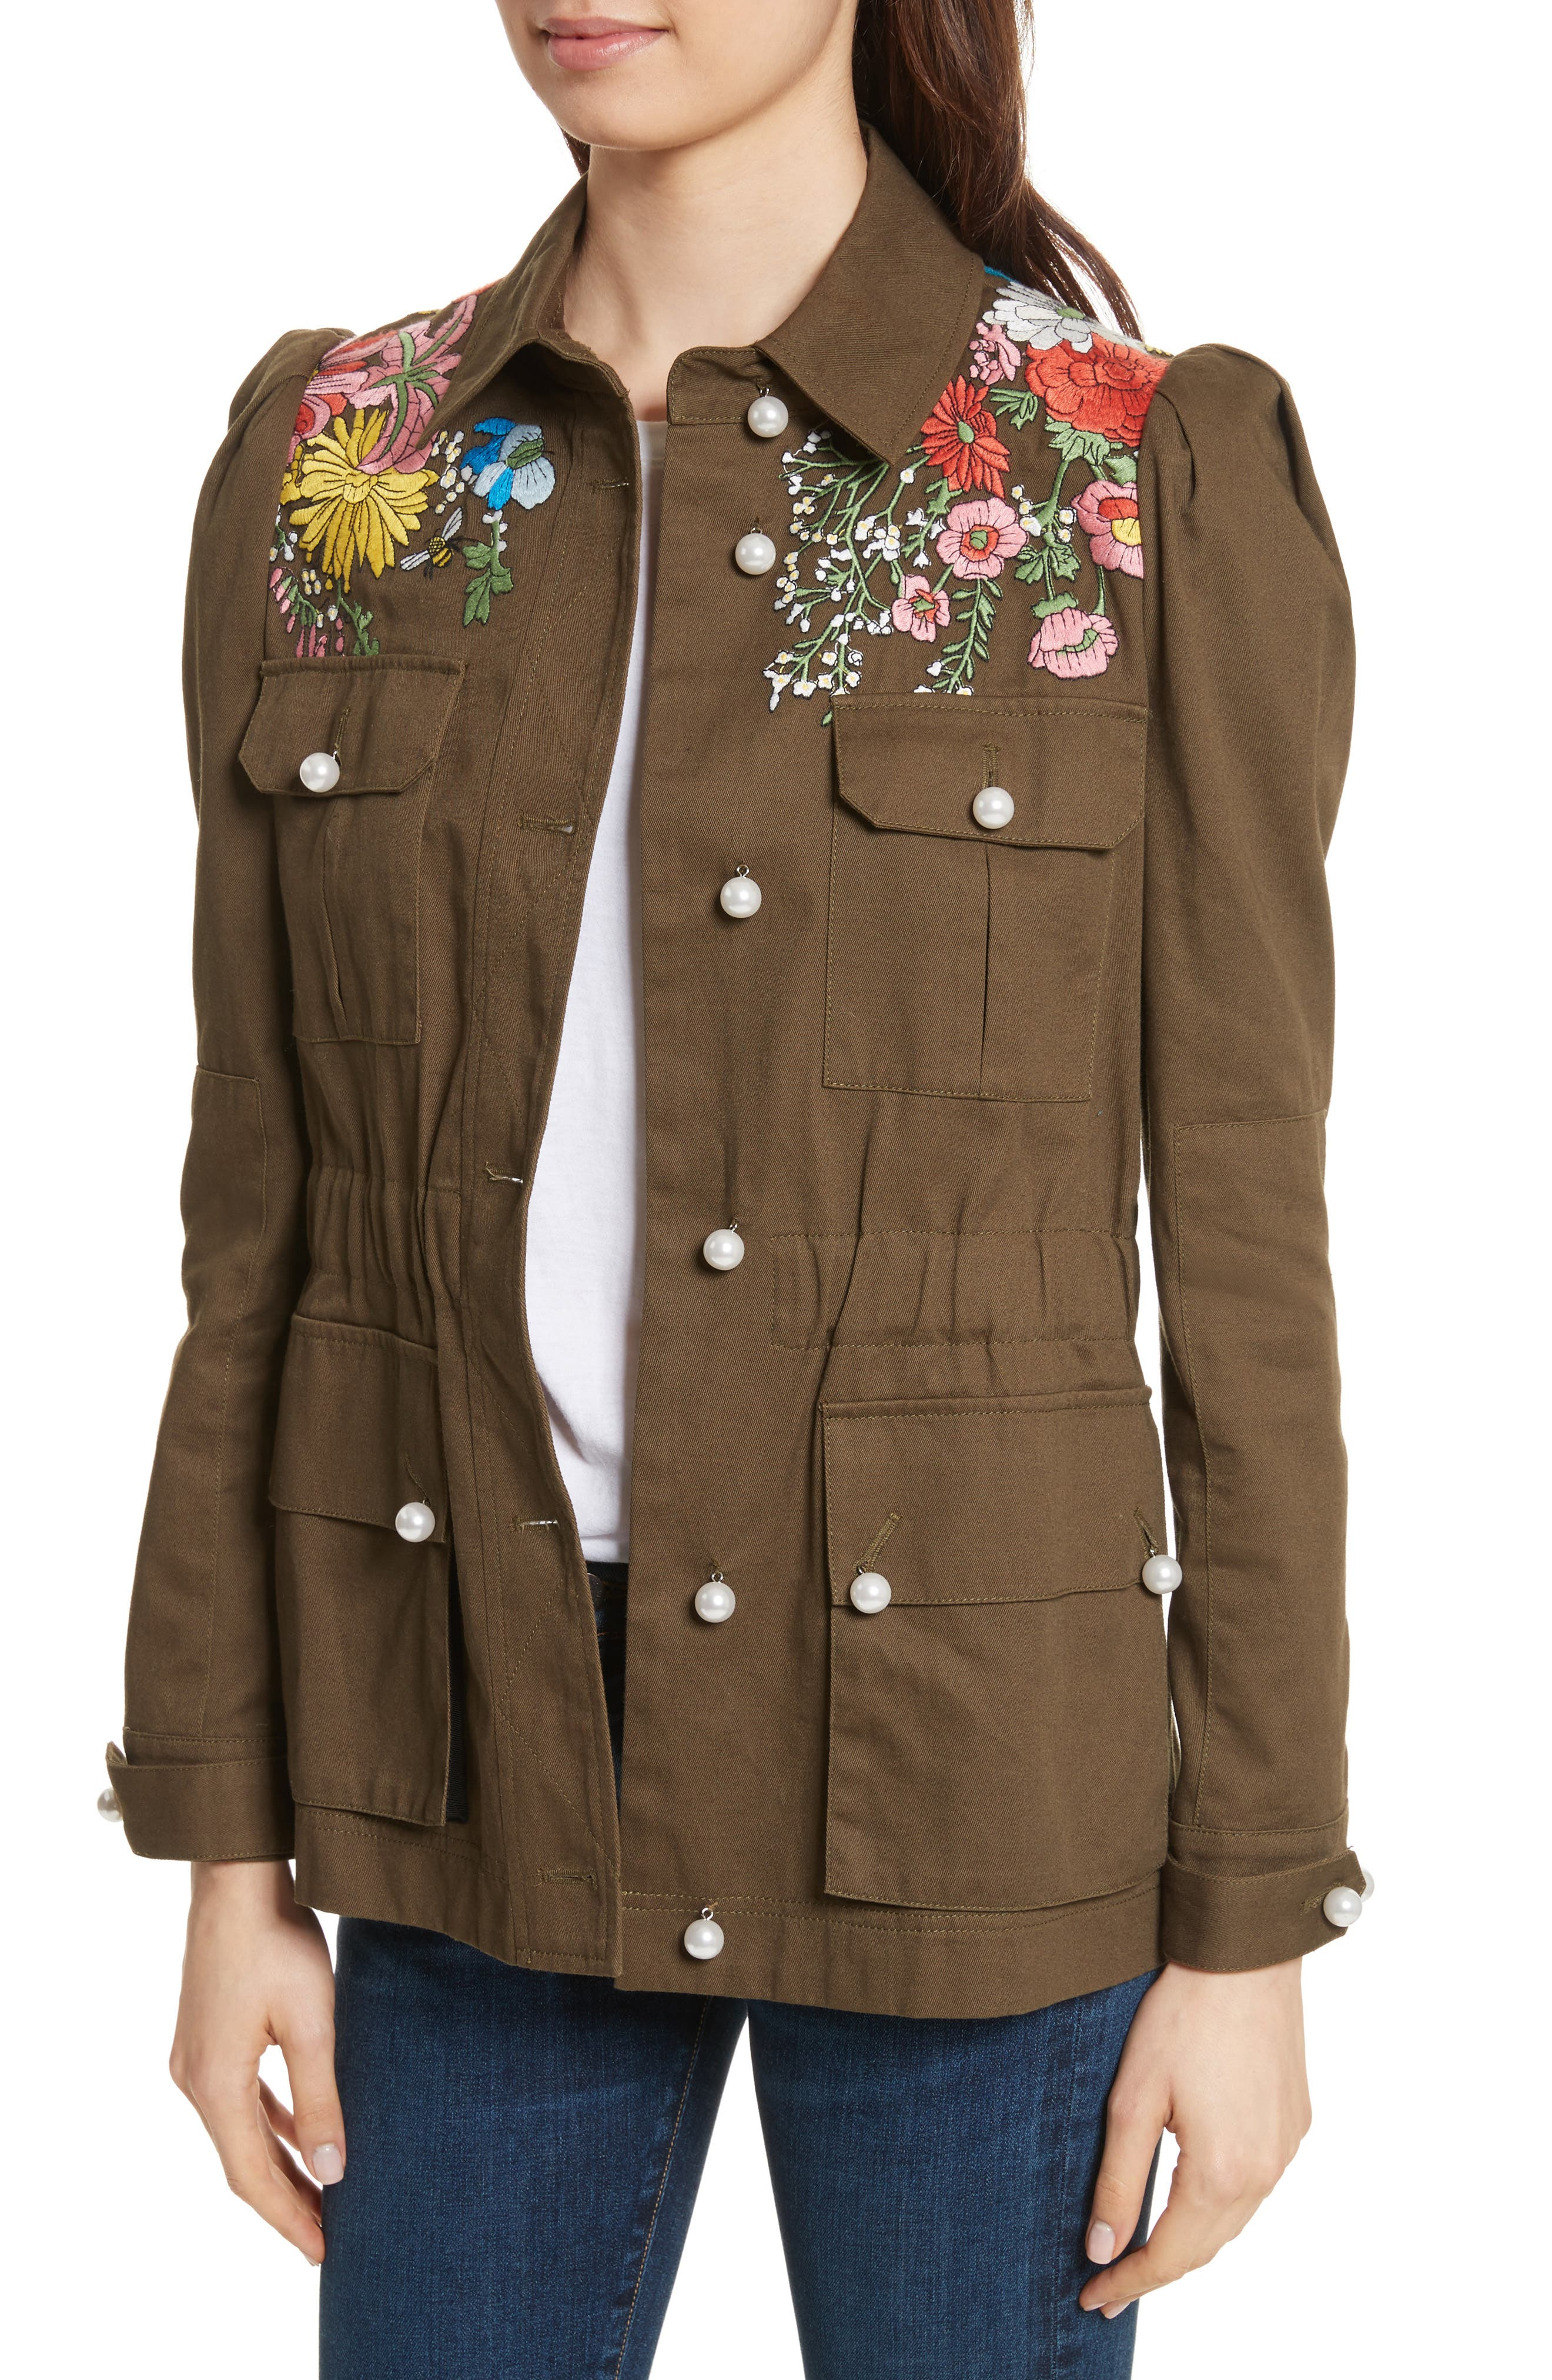 Huxley Floral Embroidered Safari Jacket,                             Alternate thumbnail 4, color,                             Army